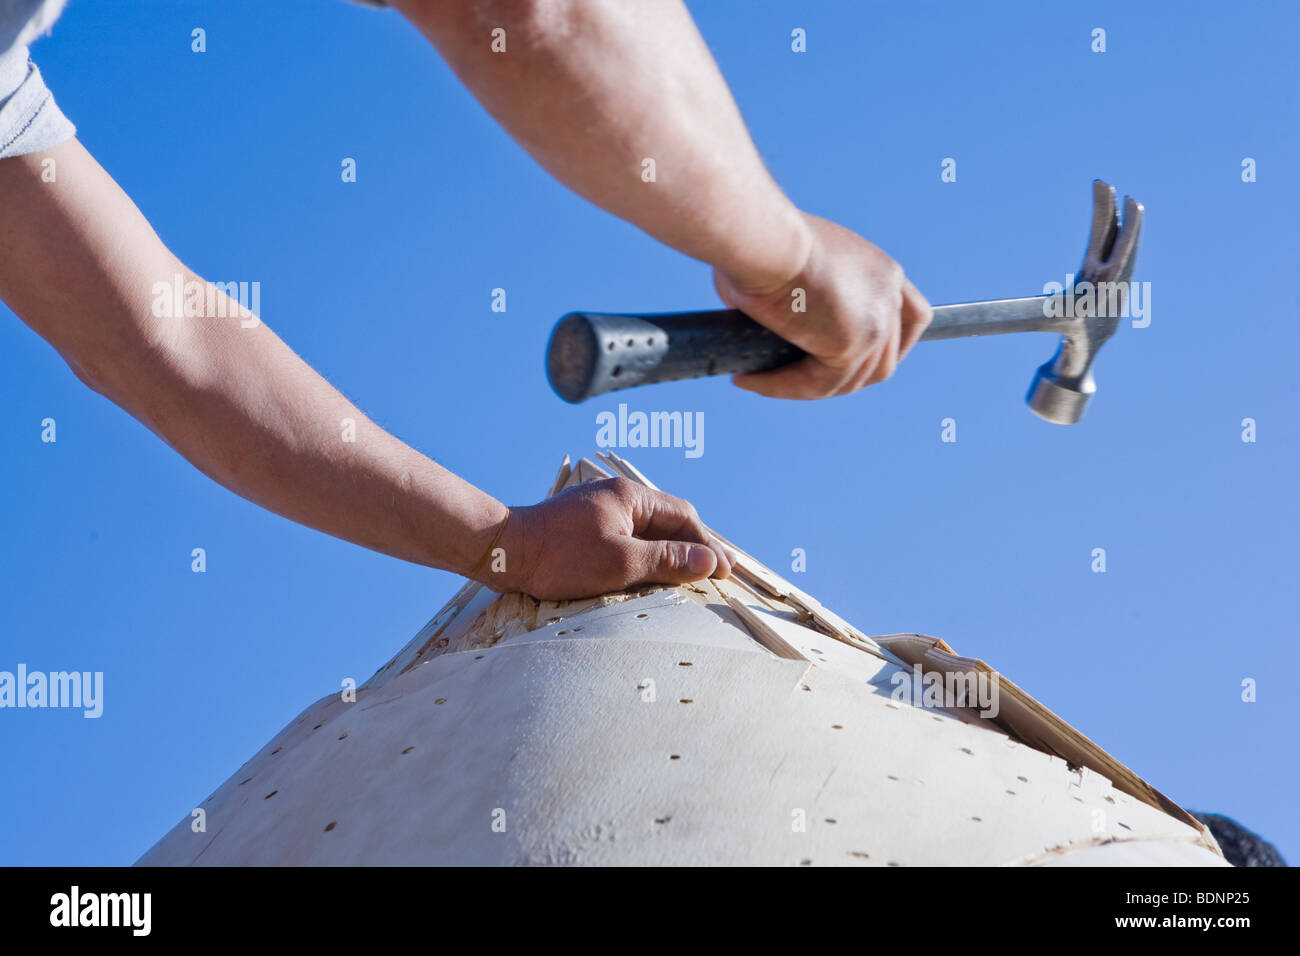 Carpenter working on the turret of a house - Stock Image